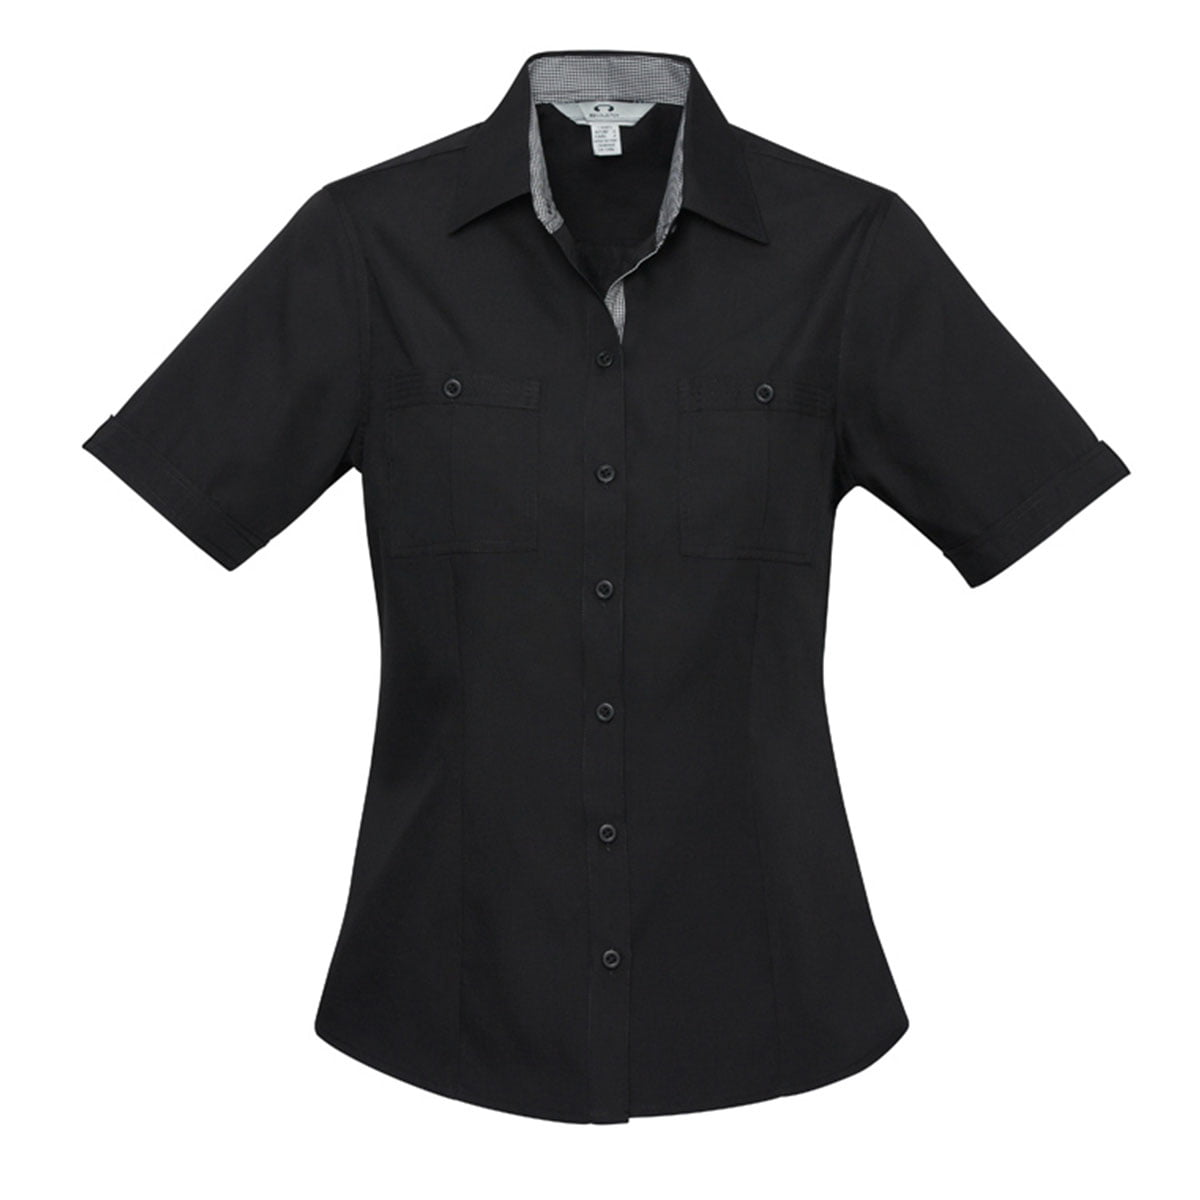 Ladies Bondi Short Sleeve Shirt-Black / Check